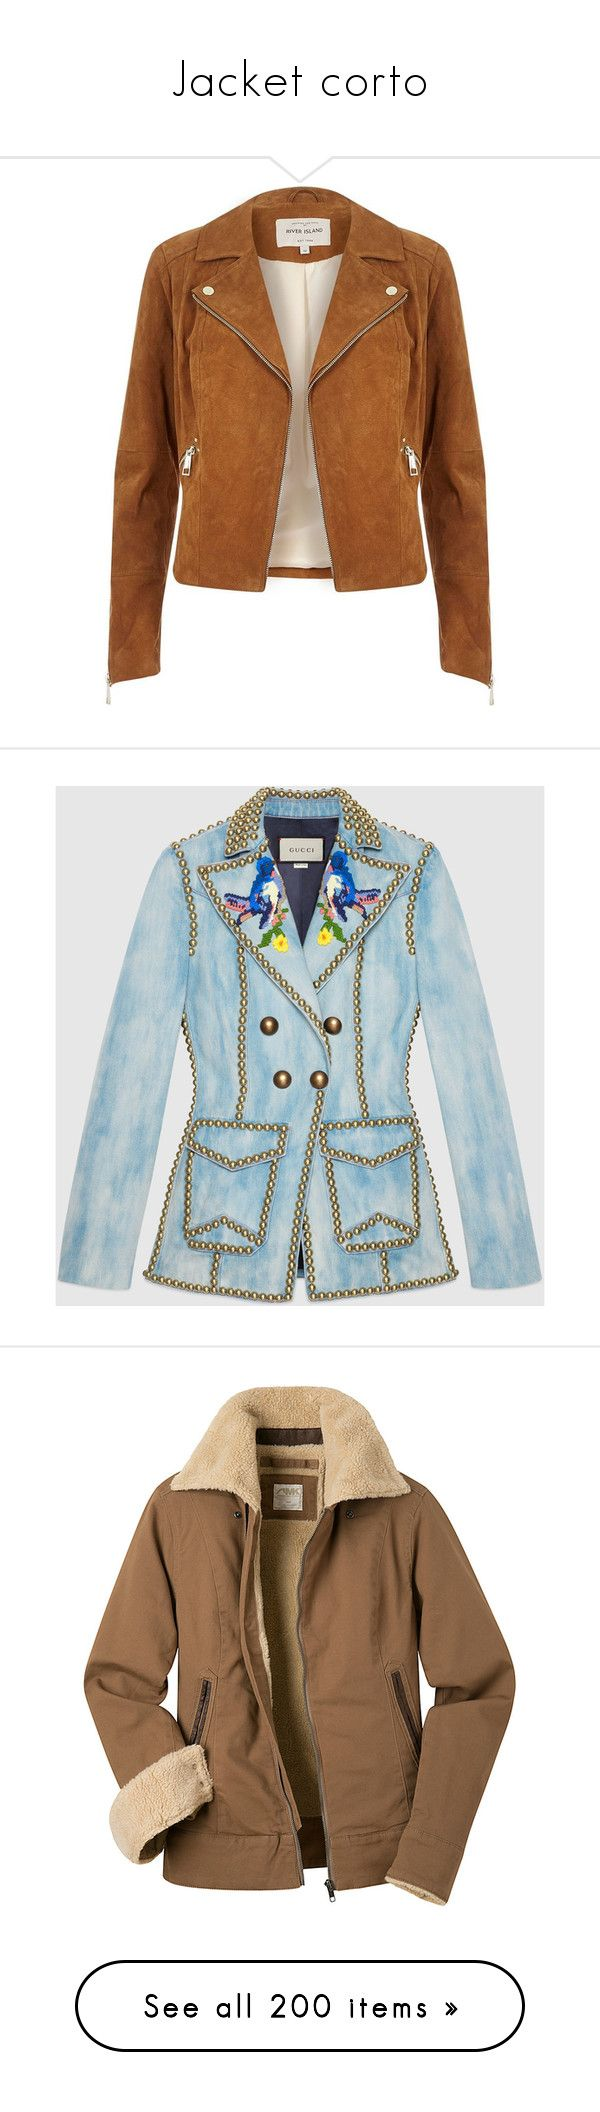 Jacket corto by georginalan on Polyvore featuring polyvore, women's fashion, clothing, outerwear, jackets, coats & jackets, casacos, coats / jackets, sale, tan, women, biker jackets, brown moto jacket, brown motorcycle jacket, tan moto jacket, tan jacket, gucci, denim, ready-to-wear, embroidered jackets, denim jacket, gucci jacket, studded denim jackets, lapel jacket, brown, brown jacket, sheep fur jacket, brown shearling jacket, mountain khakis jacket, green, colorblock jackets…